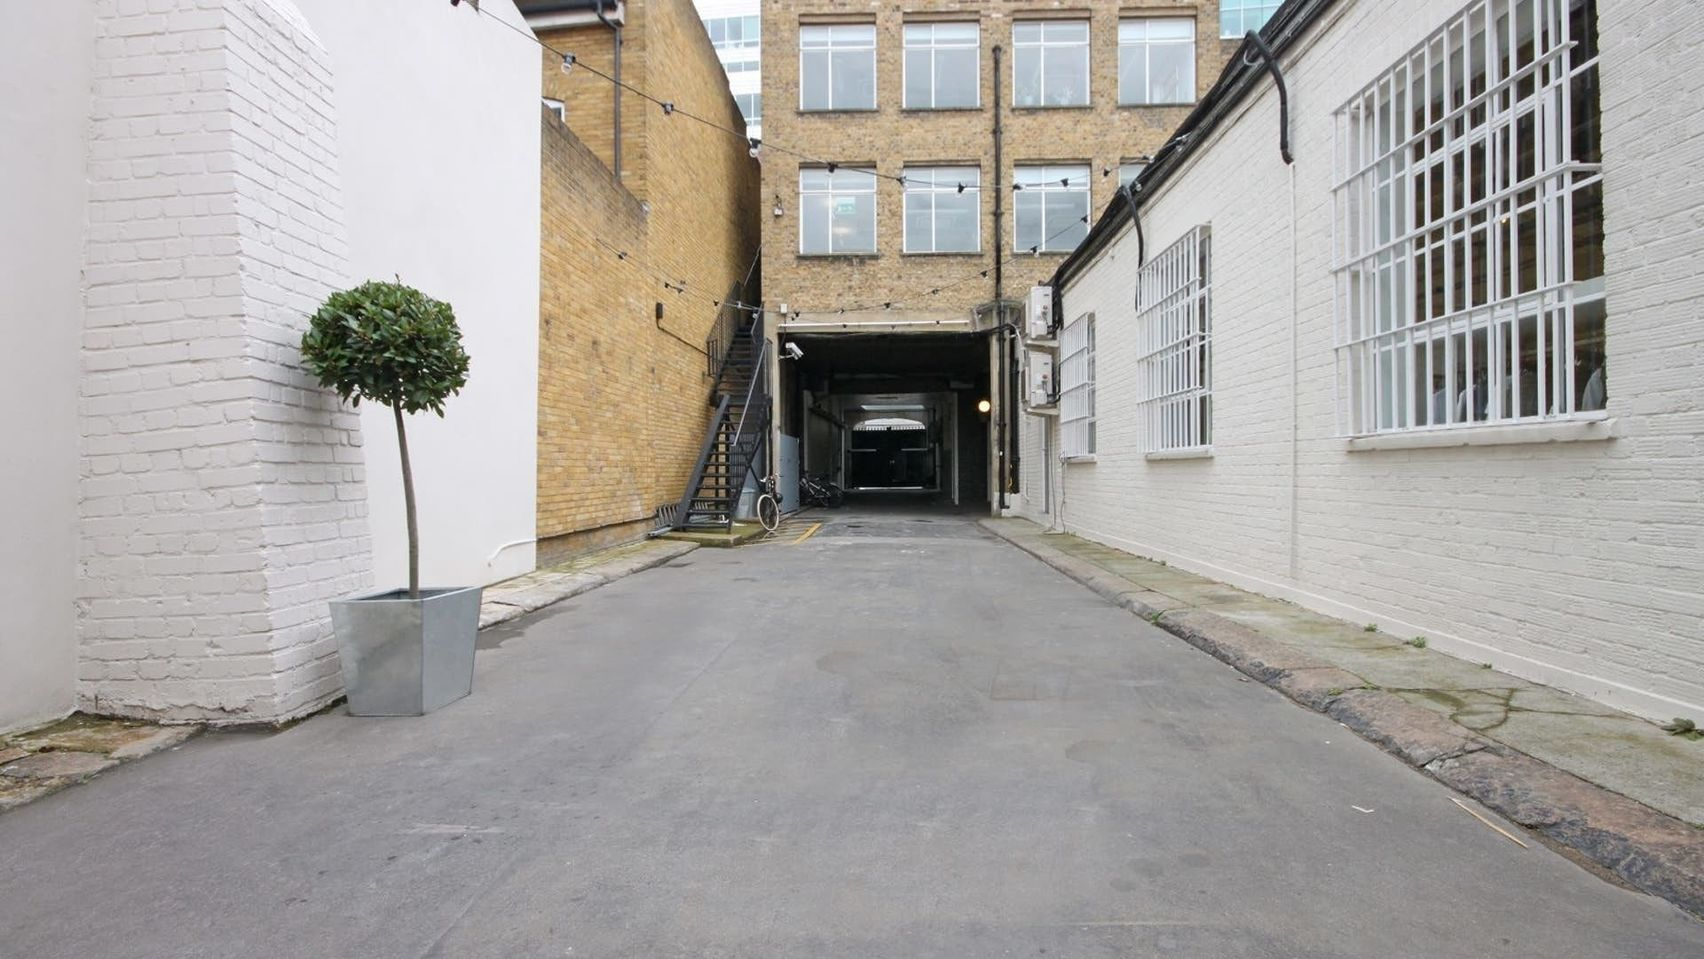 A pathway up to the entrance of The Yard